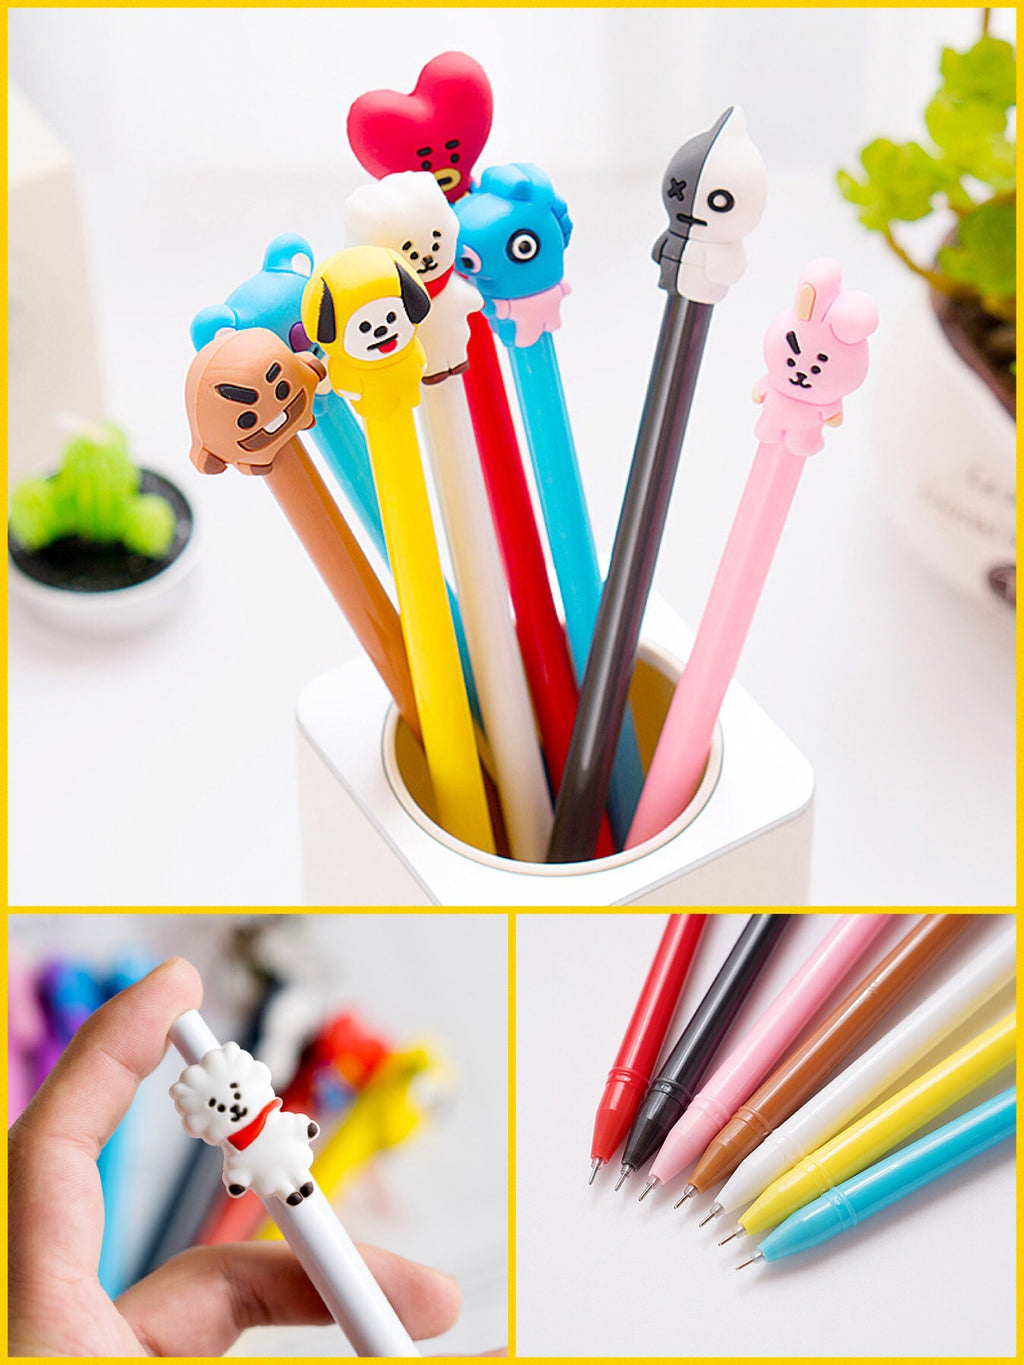 BlissGirl - Gel Pen Friend - - Harajuku - Kawaii - Alternative - Fashion